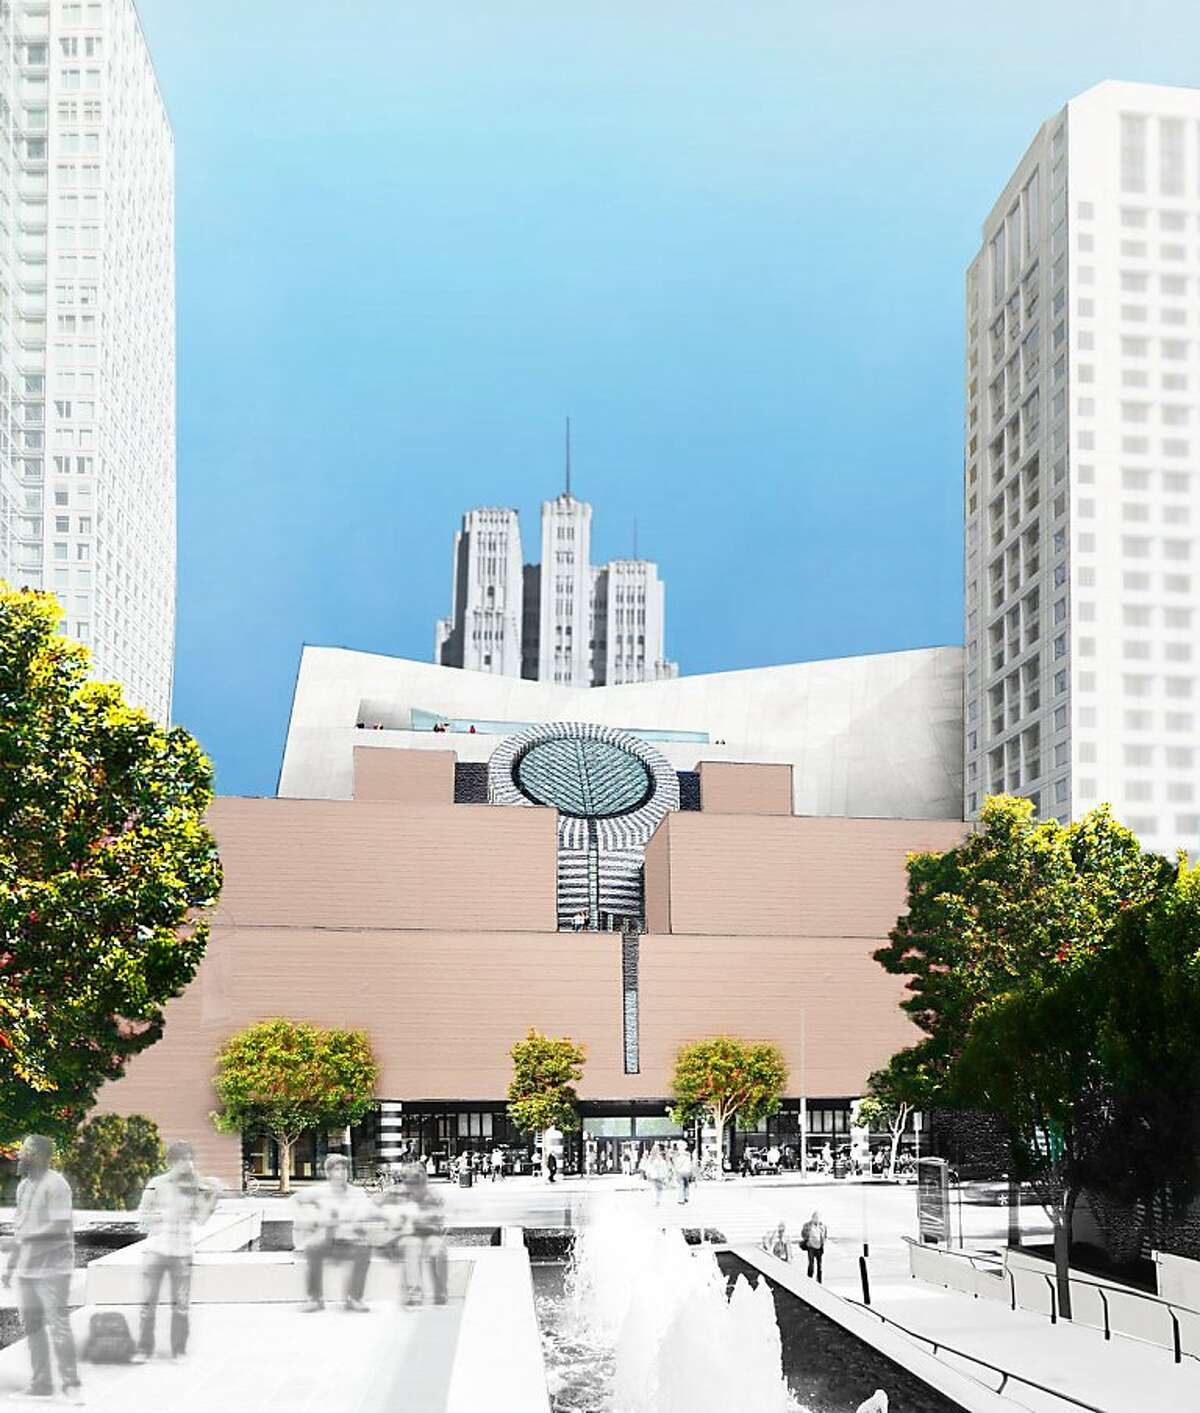 The design concept for the proposed expansion of SFMOMA features a bar of space that is 190 feet tall at Howard Street and 180 feet tall at Minna Street, but tapers down or inward at points to preserve views and sunlight as much as possible. It would also have sculpture terraces along its surface. Ran on: 05-26-2011 The concept features a bar of space that is 190 feet tall at Howard Street and 180 feet tall at Minna Street. Ran on: 05-26-2011 The concept features a bar of space that is 190 feet tall at Howard Street and 180 feet tall at Minna Street. Ran on: 05-26-2011 The architects plans take a deferential approach to the museums neighbors by lessening the impact on views.